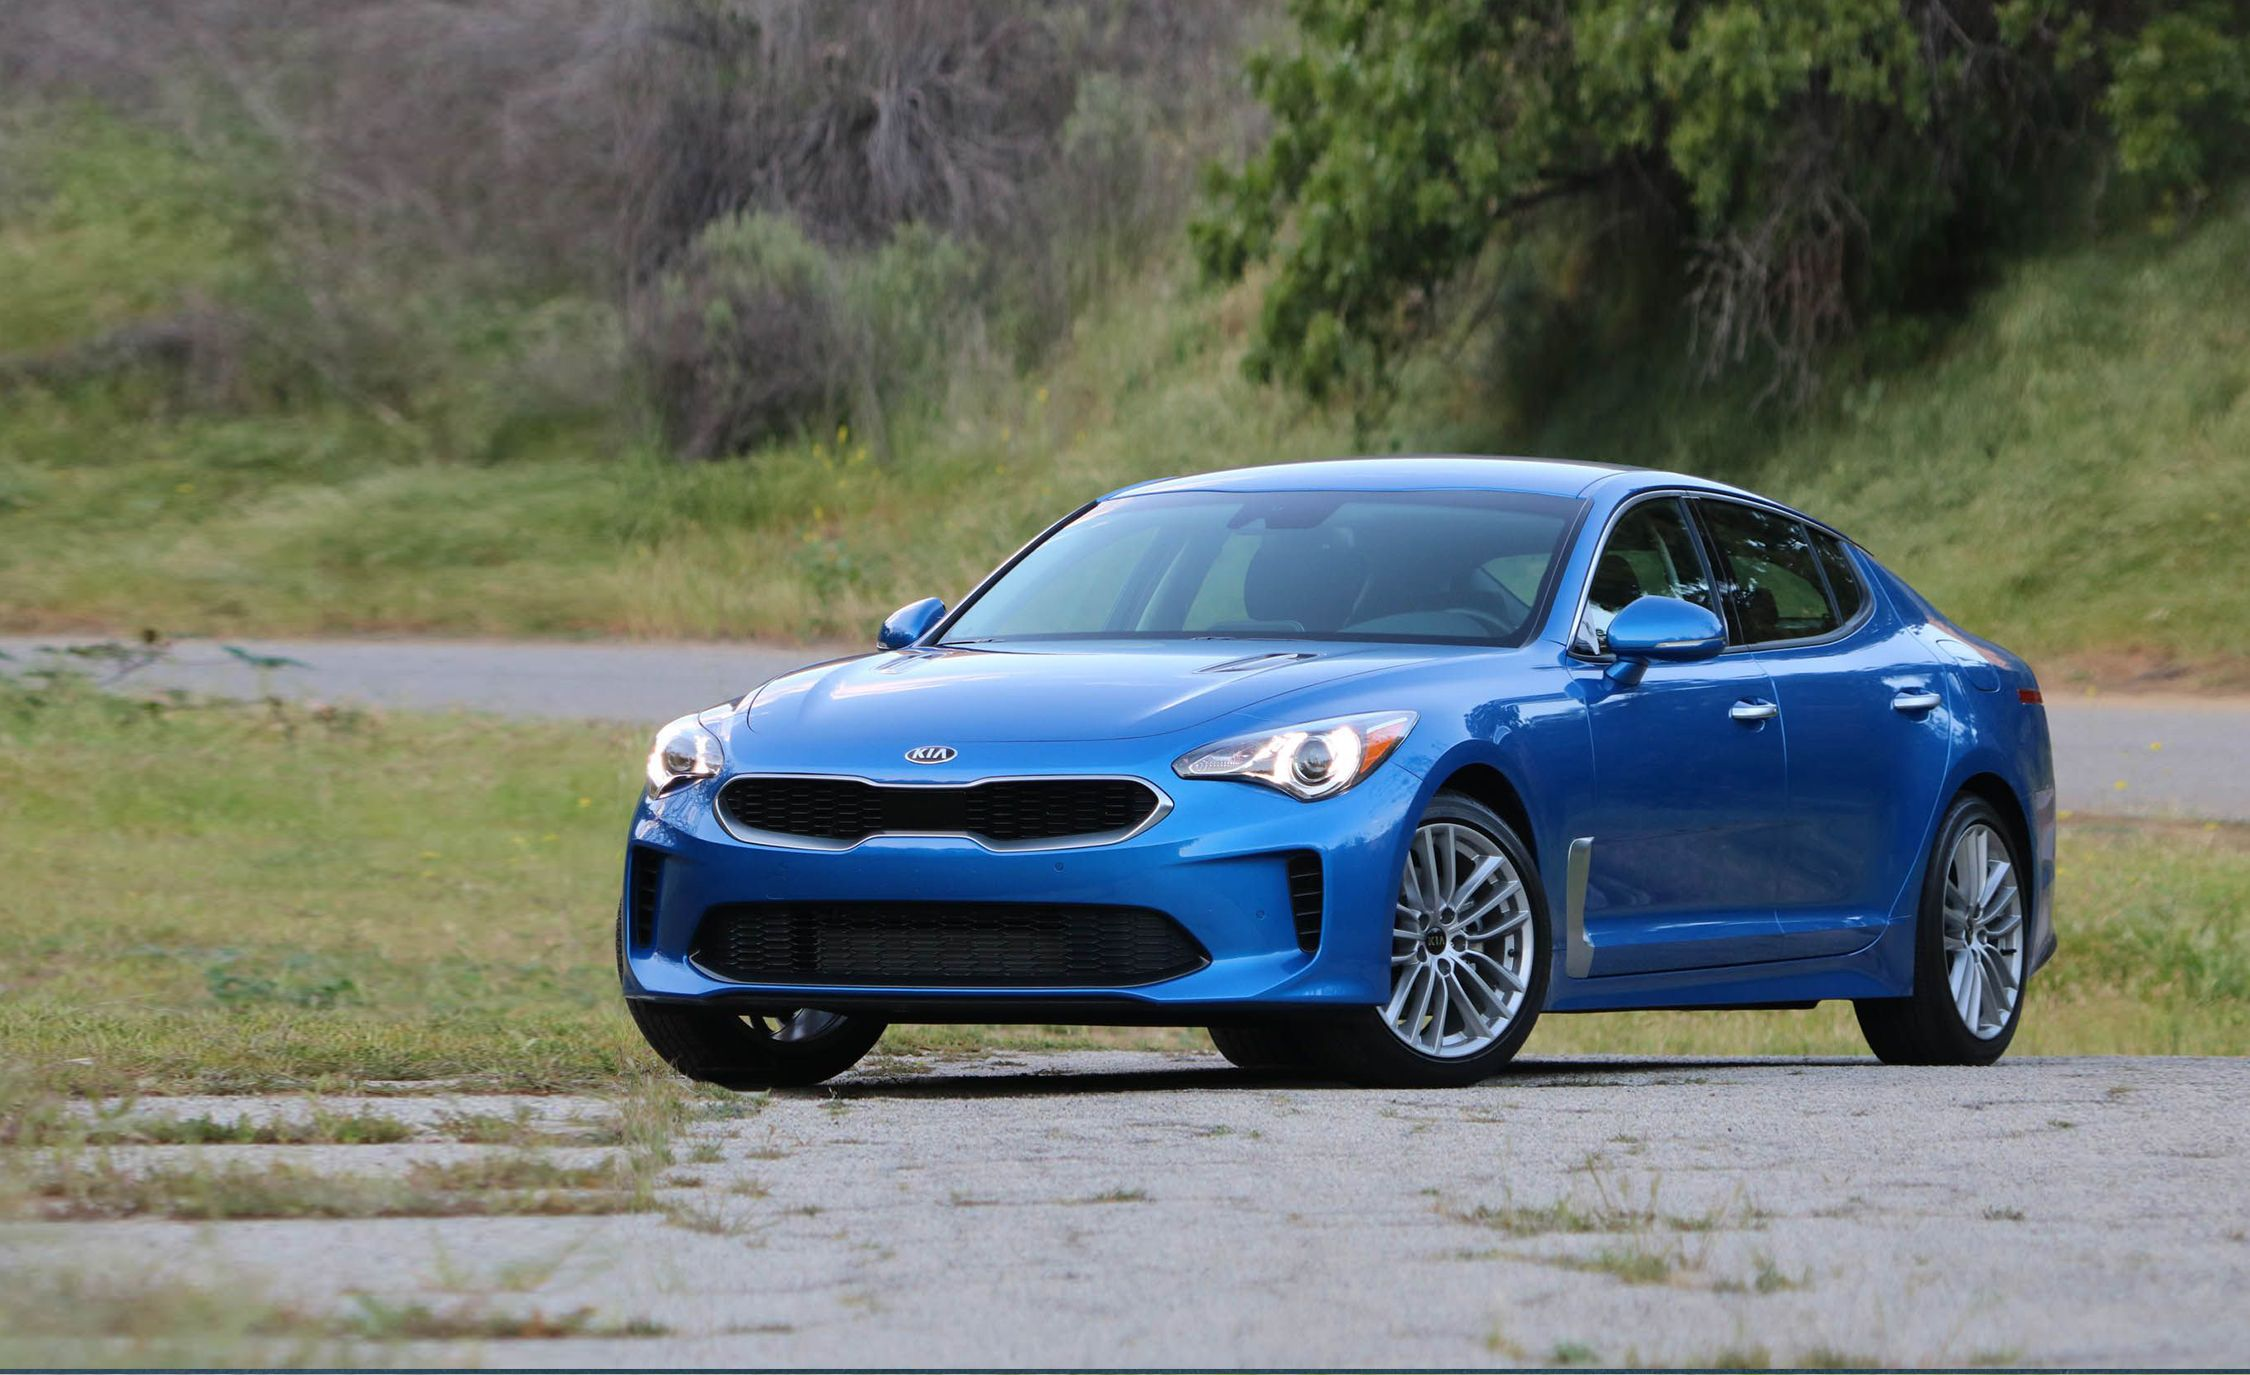 2019 Kia Stinger Review Pricing And Specs